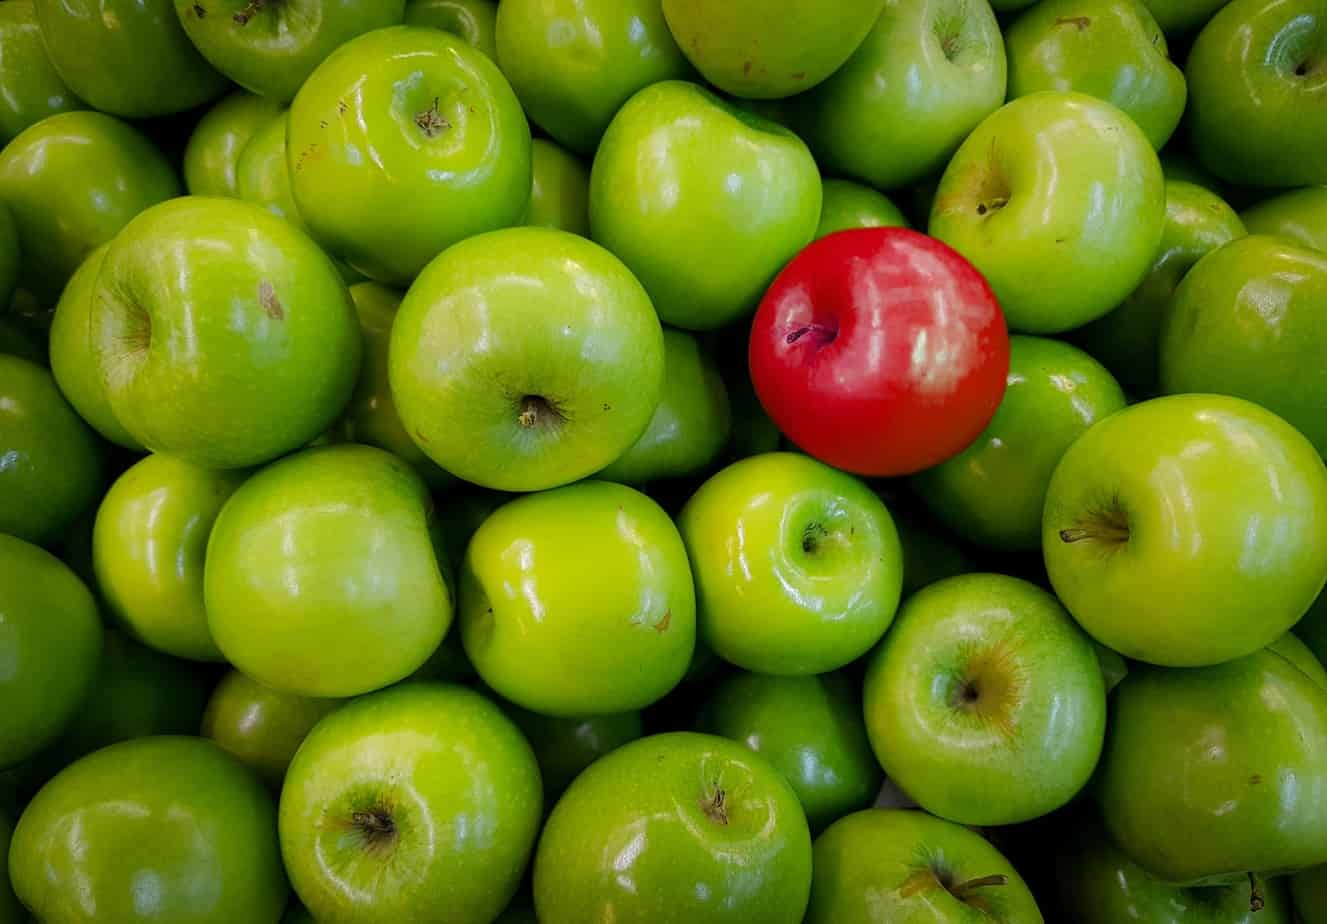 One red apple among many green ones